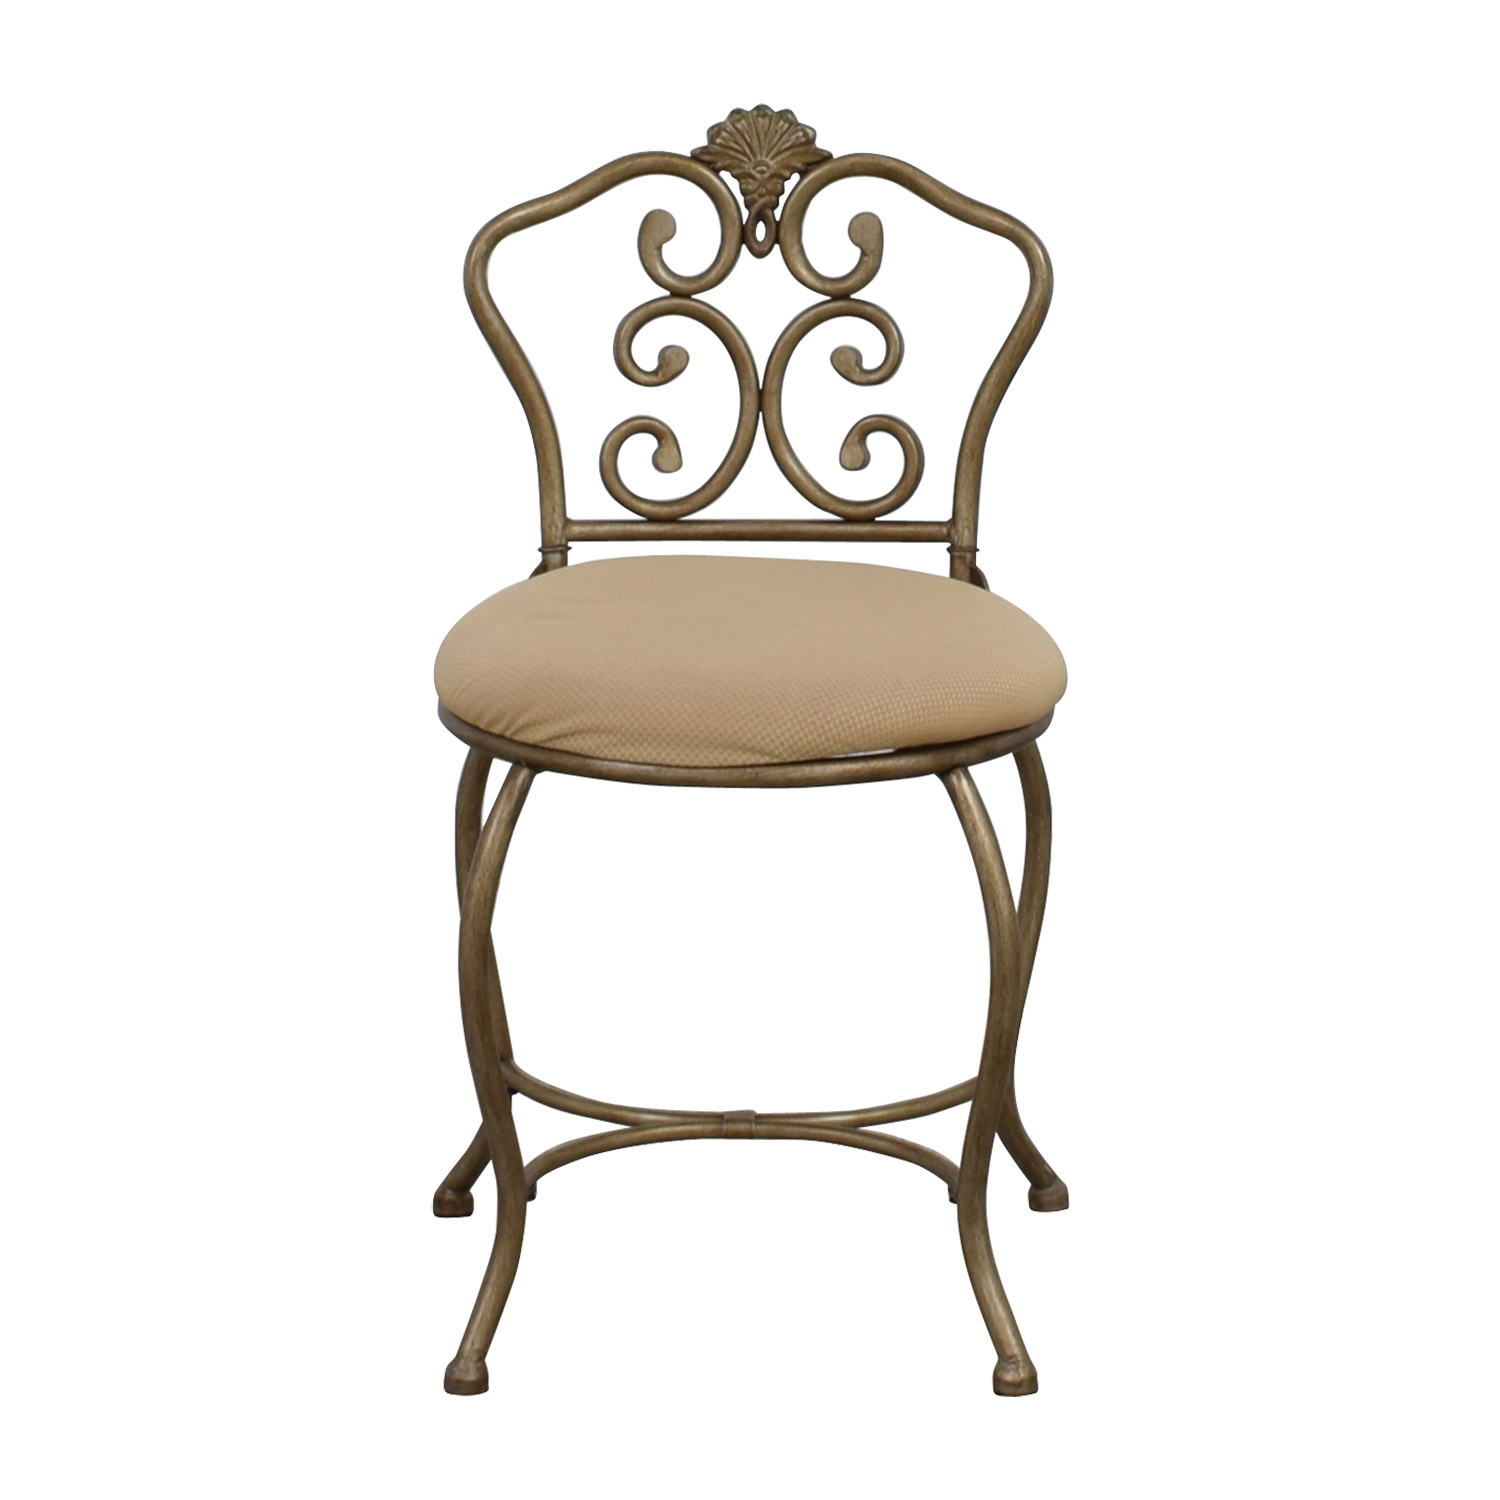 Tan Seat with Silver Frame Chair sale